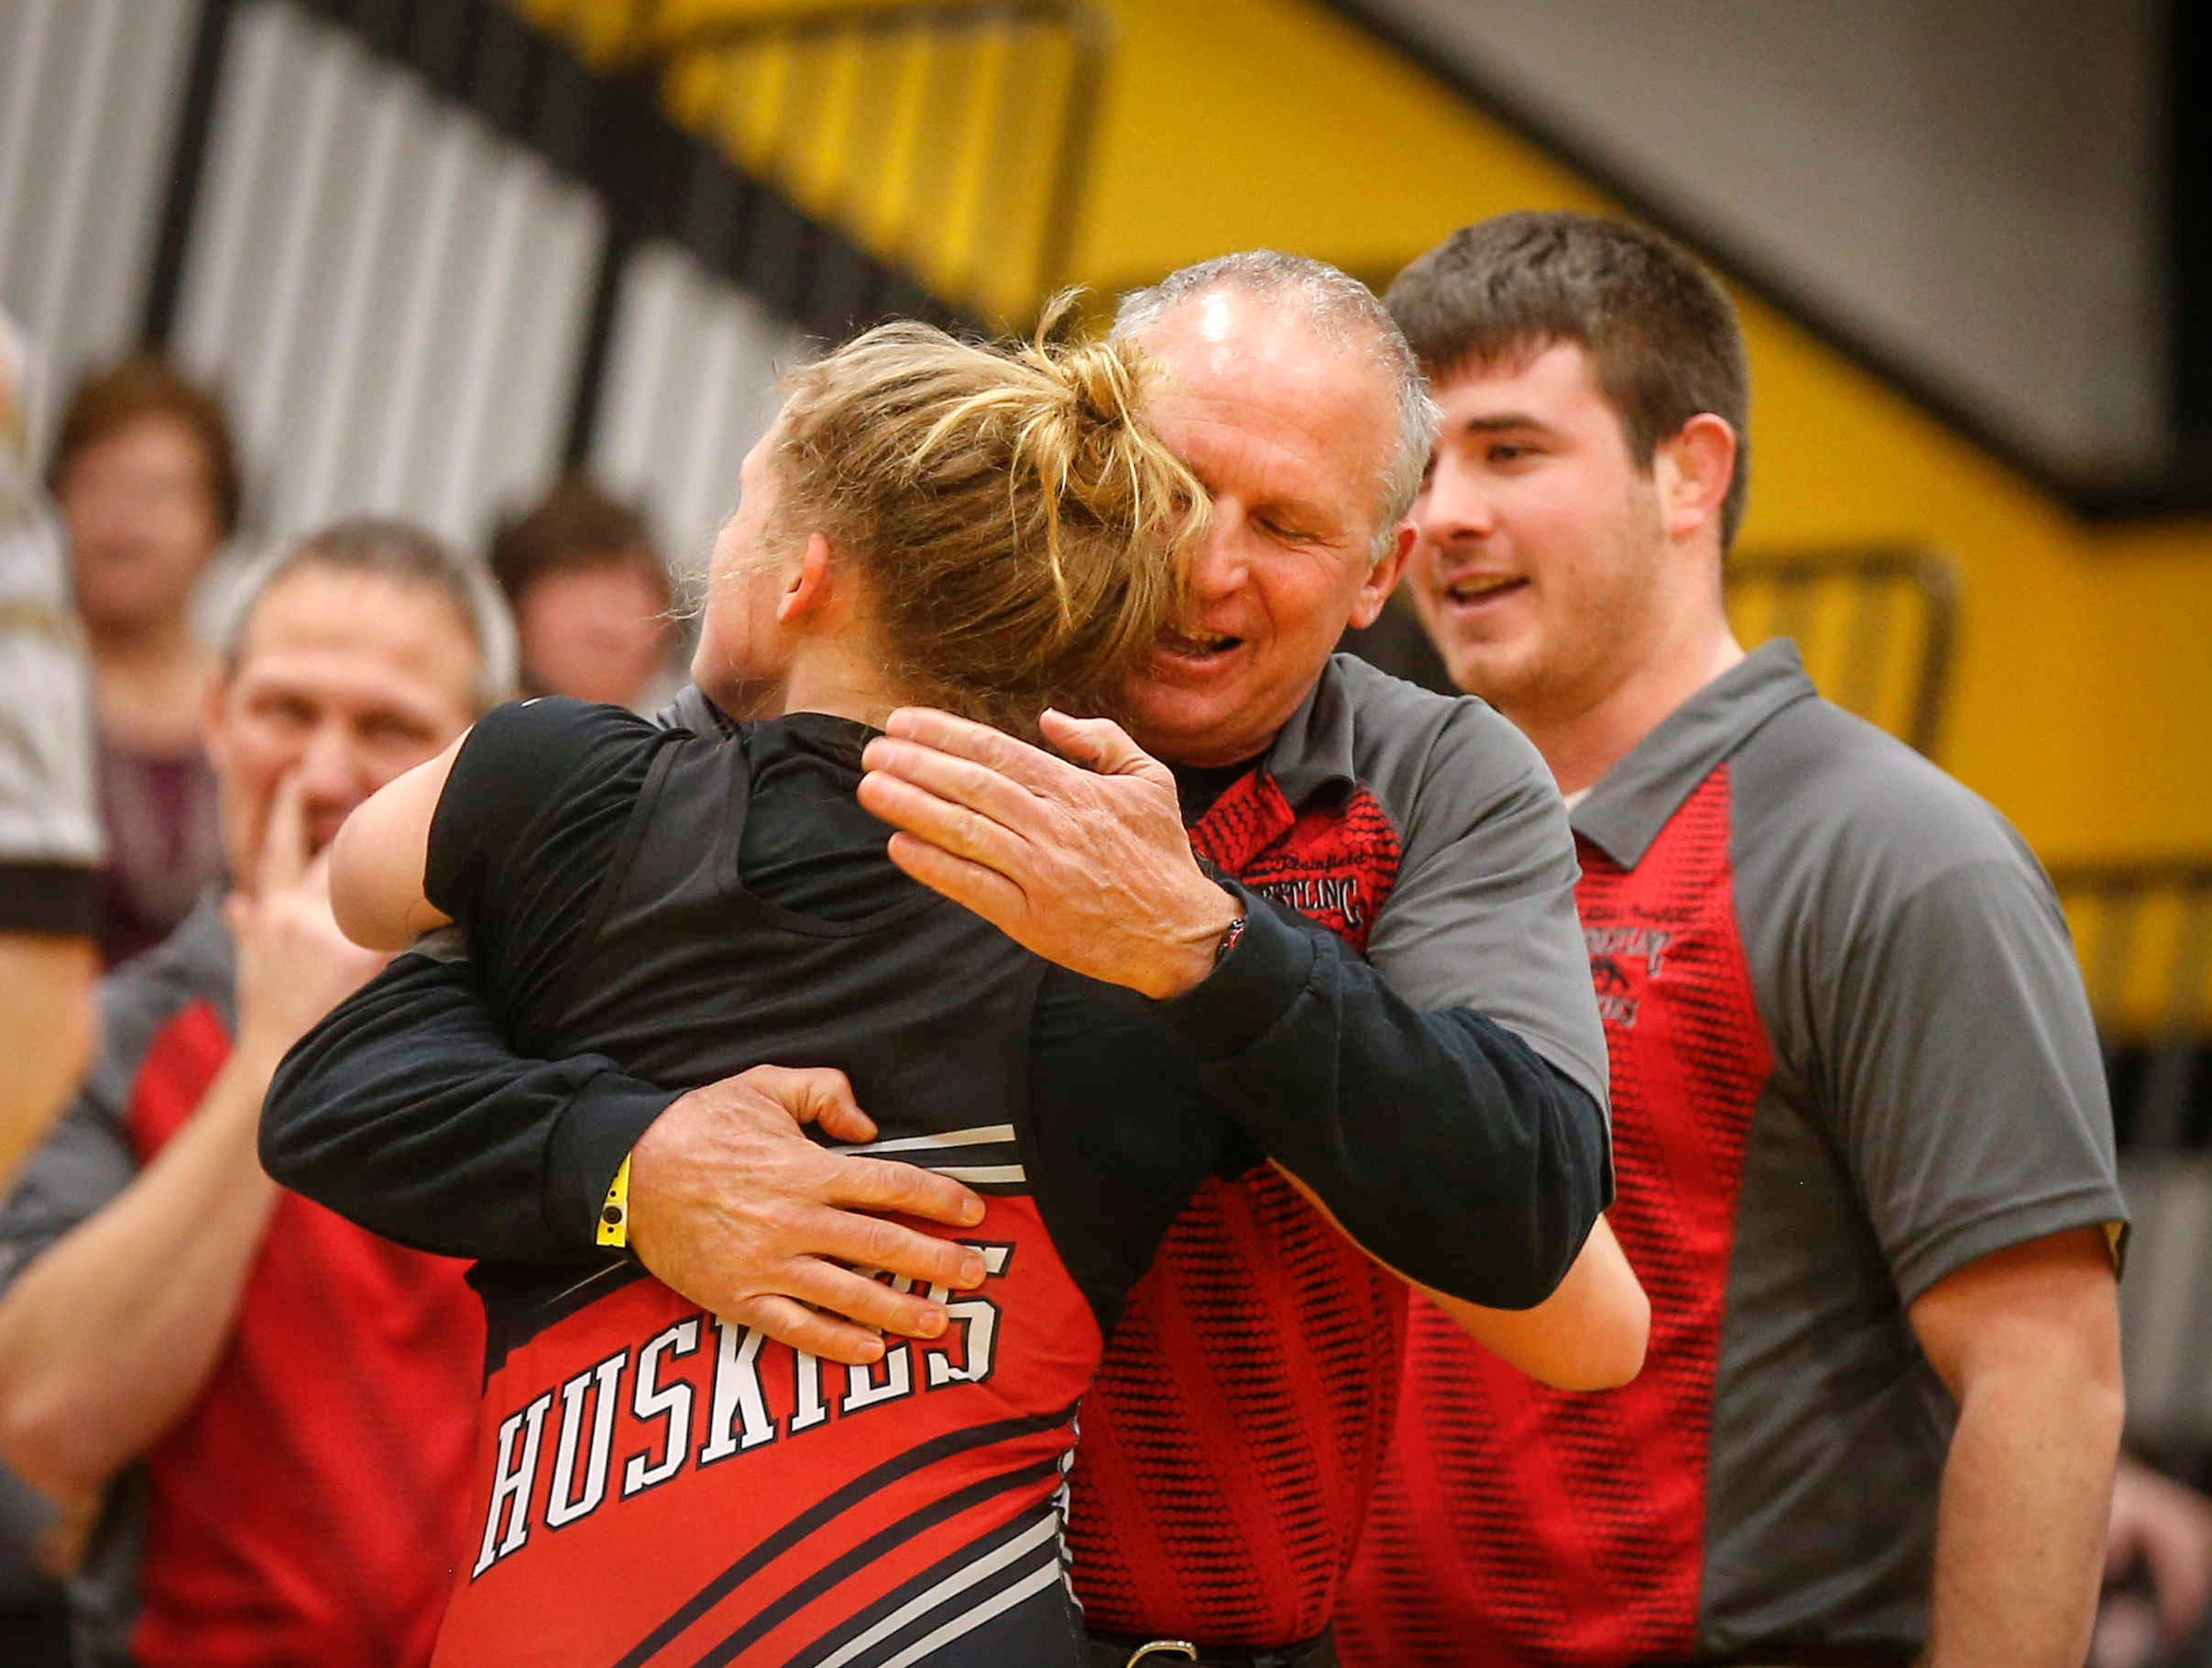 Nashua-Plainfield wrestling coach Al Frost hugs sophomore Toyia Griffin pinned Waverly-Shell Rock's Hedda Kveum in 16 seconds of the first period to win a state title at 152 pounds on Saturday, Jan. 19, 2019, during the first Iowa girls state wrestling tournament at Waverly-Shell Rock High School in Waverly.